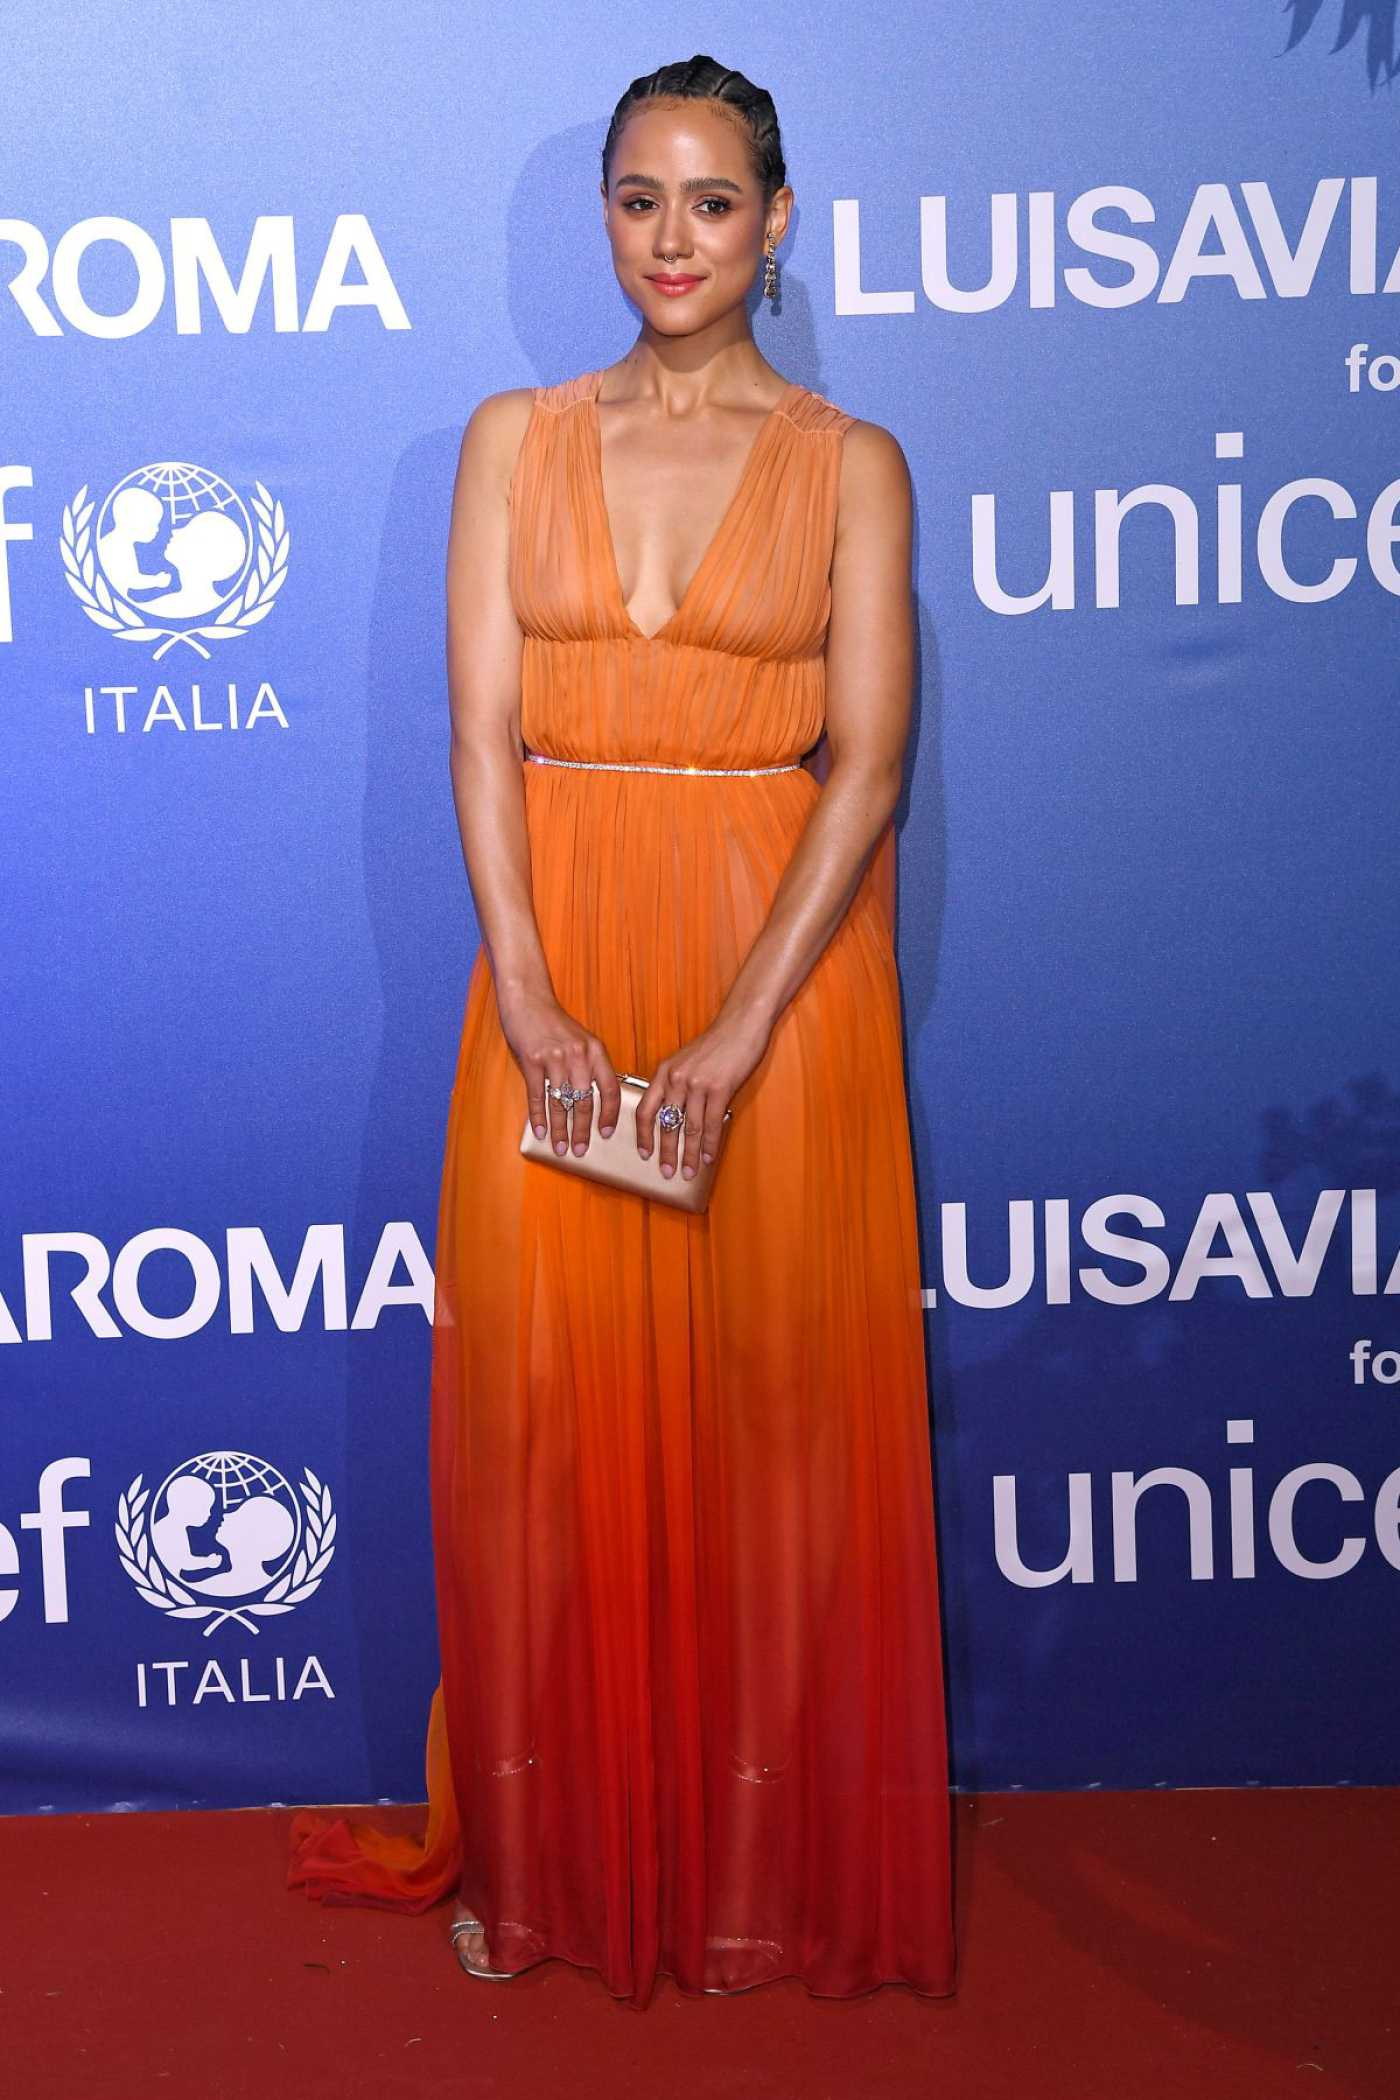 Nathalie Emmanuel Attends UNICEF Summer Gala Presented By LuisaViaRoma in Sardinia 08/09/2019